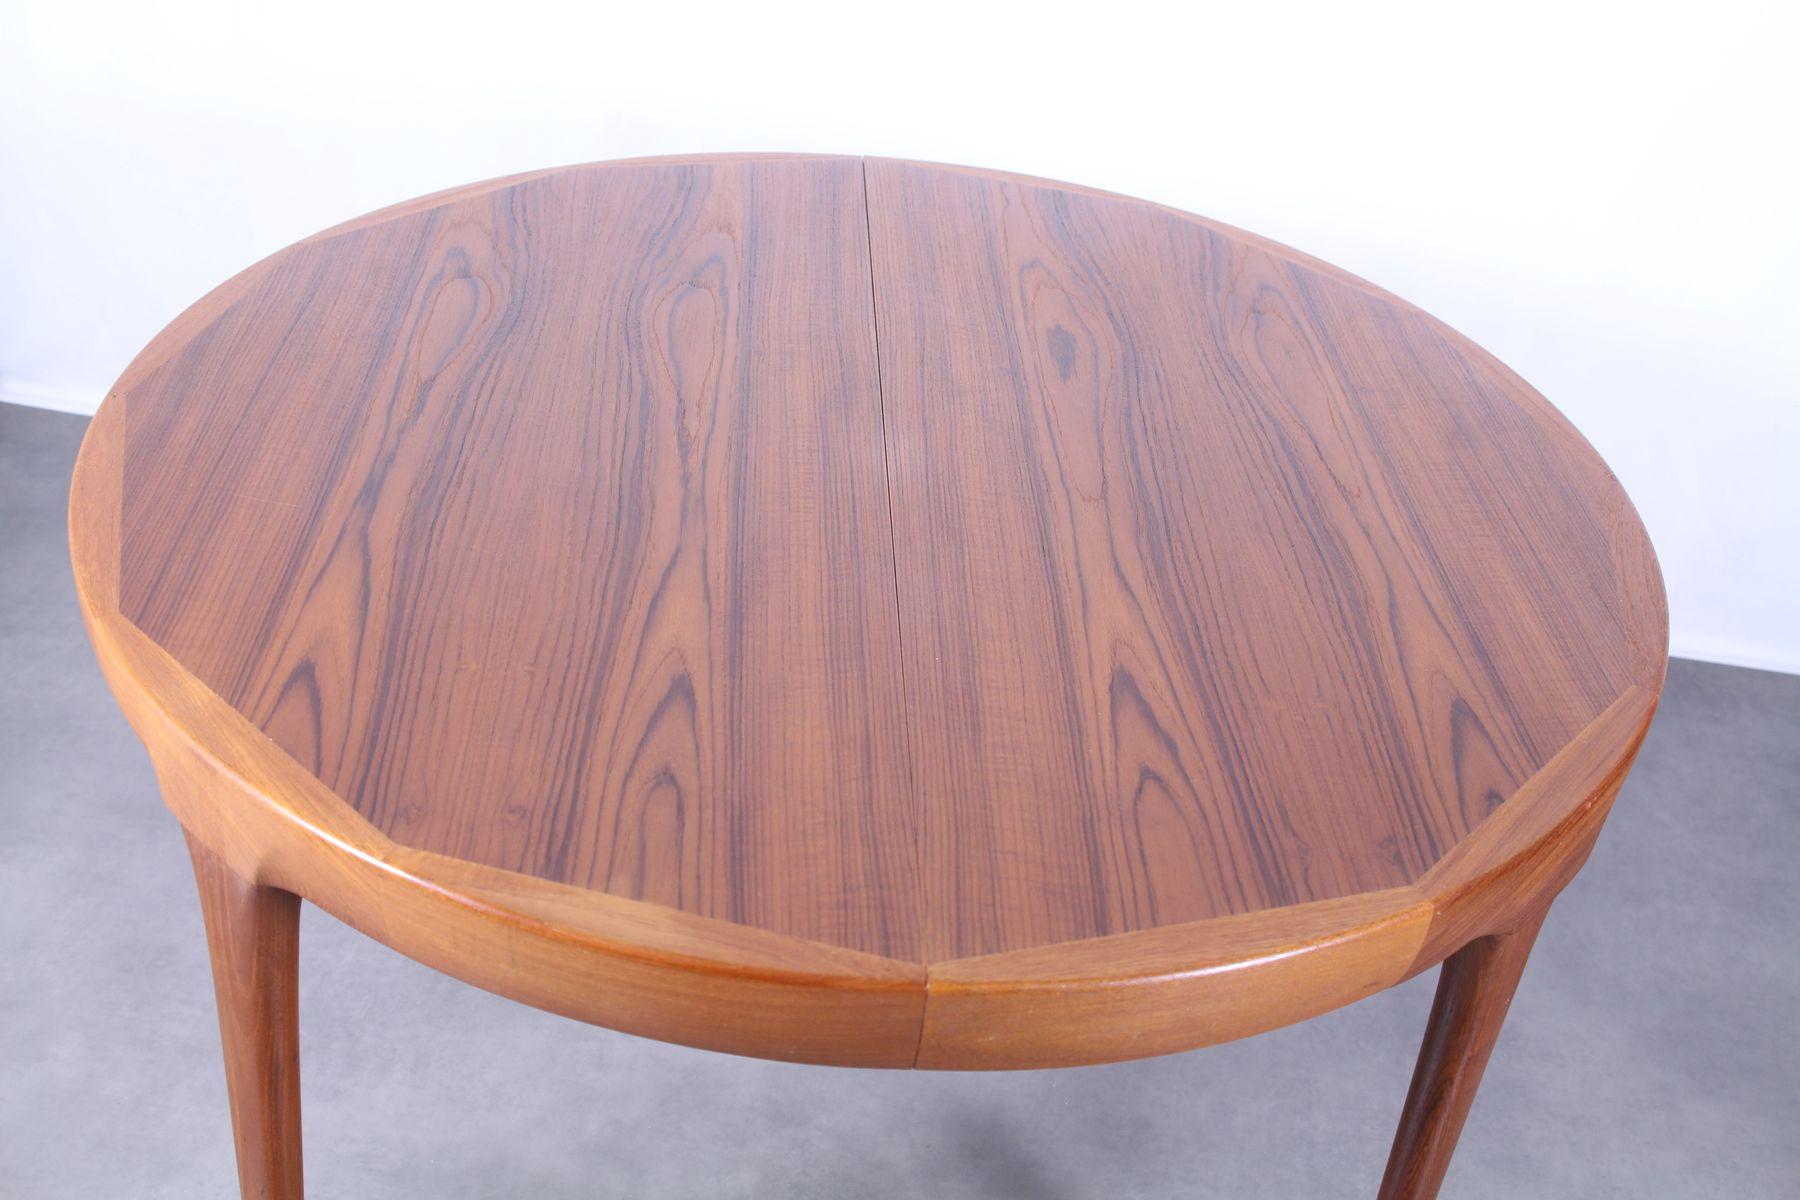 Round Teak Dining Table by Ib Kofod Larsen for Faarup Mbelfabrik